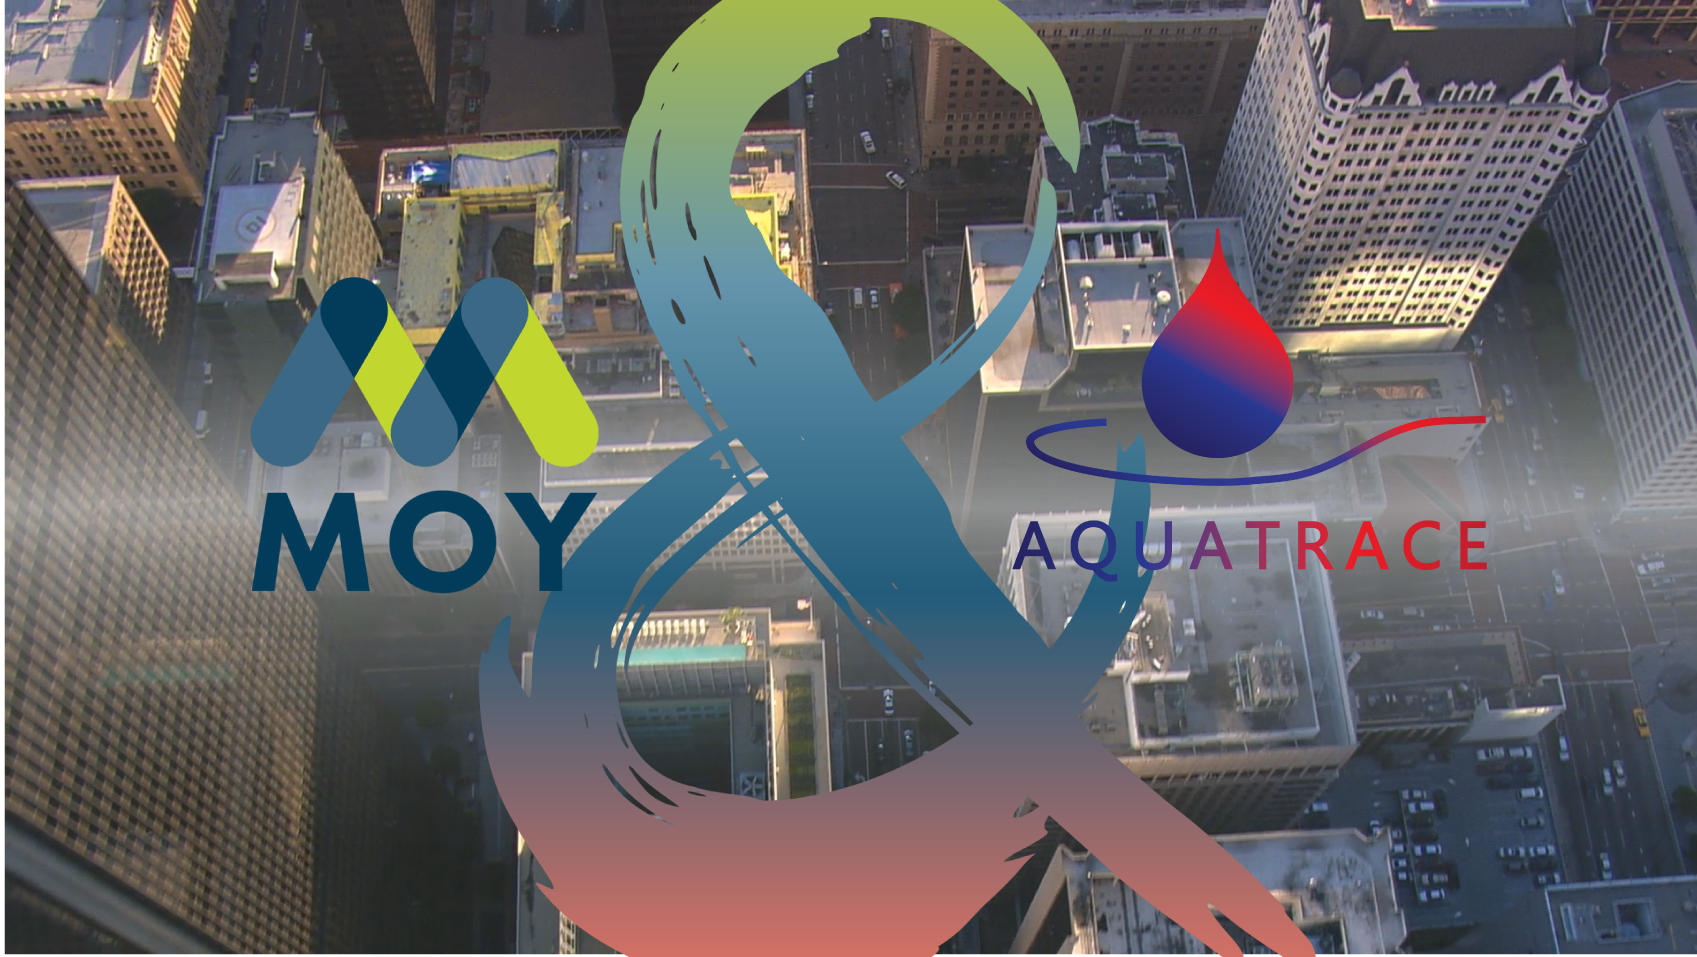 AquaTrace partners with MOY Materials to deliver Intelligent Roofing Solutions